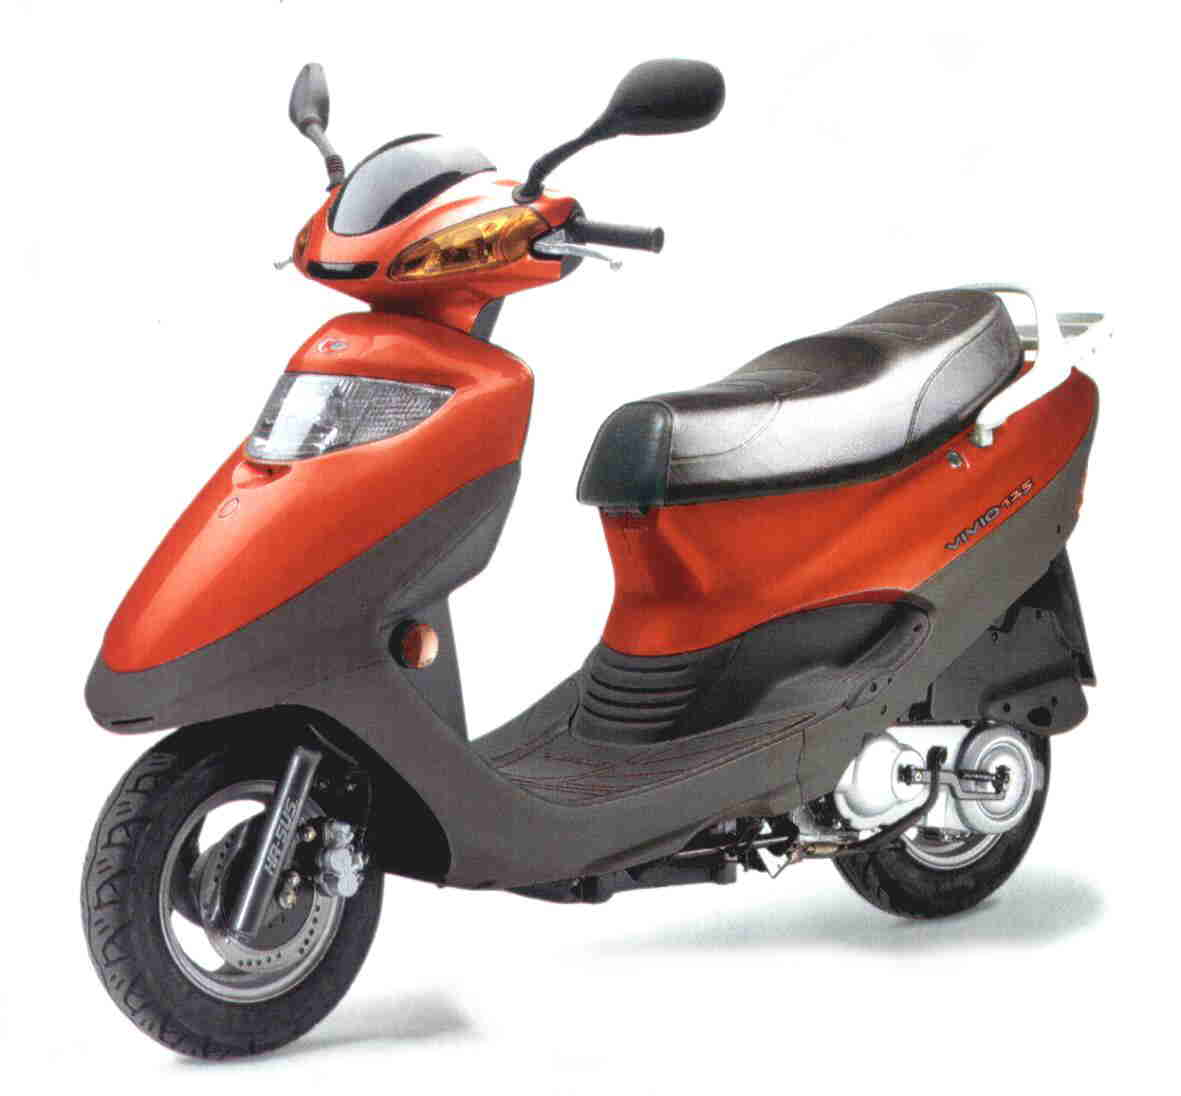 Kymco Heroism 150 1999 images #100676